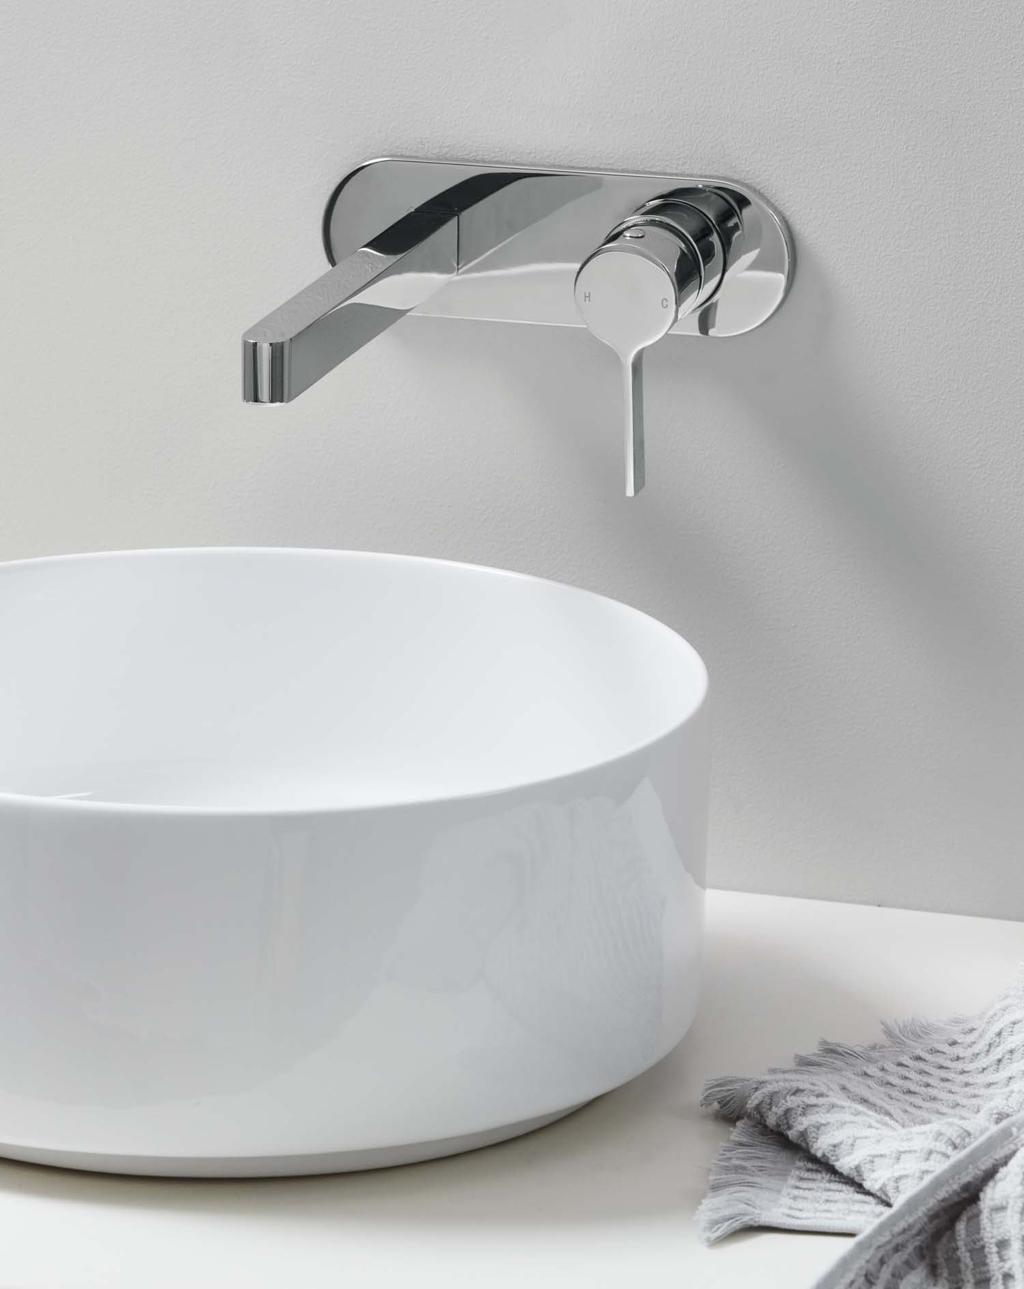 ... GUARANTEE Reece Product Quality Guarantee Mizu tapware, showers, and  accessories enjoy a 7 year warranty and a one year parts and labour  warranty.